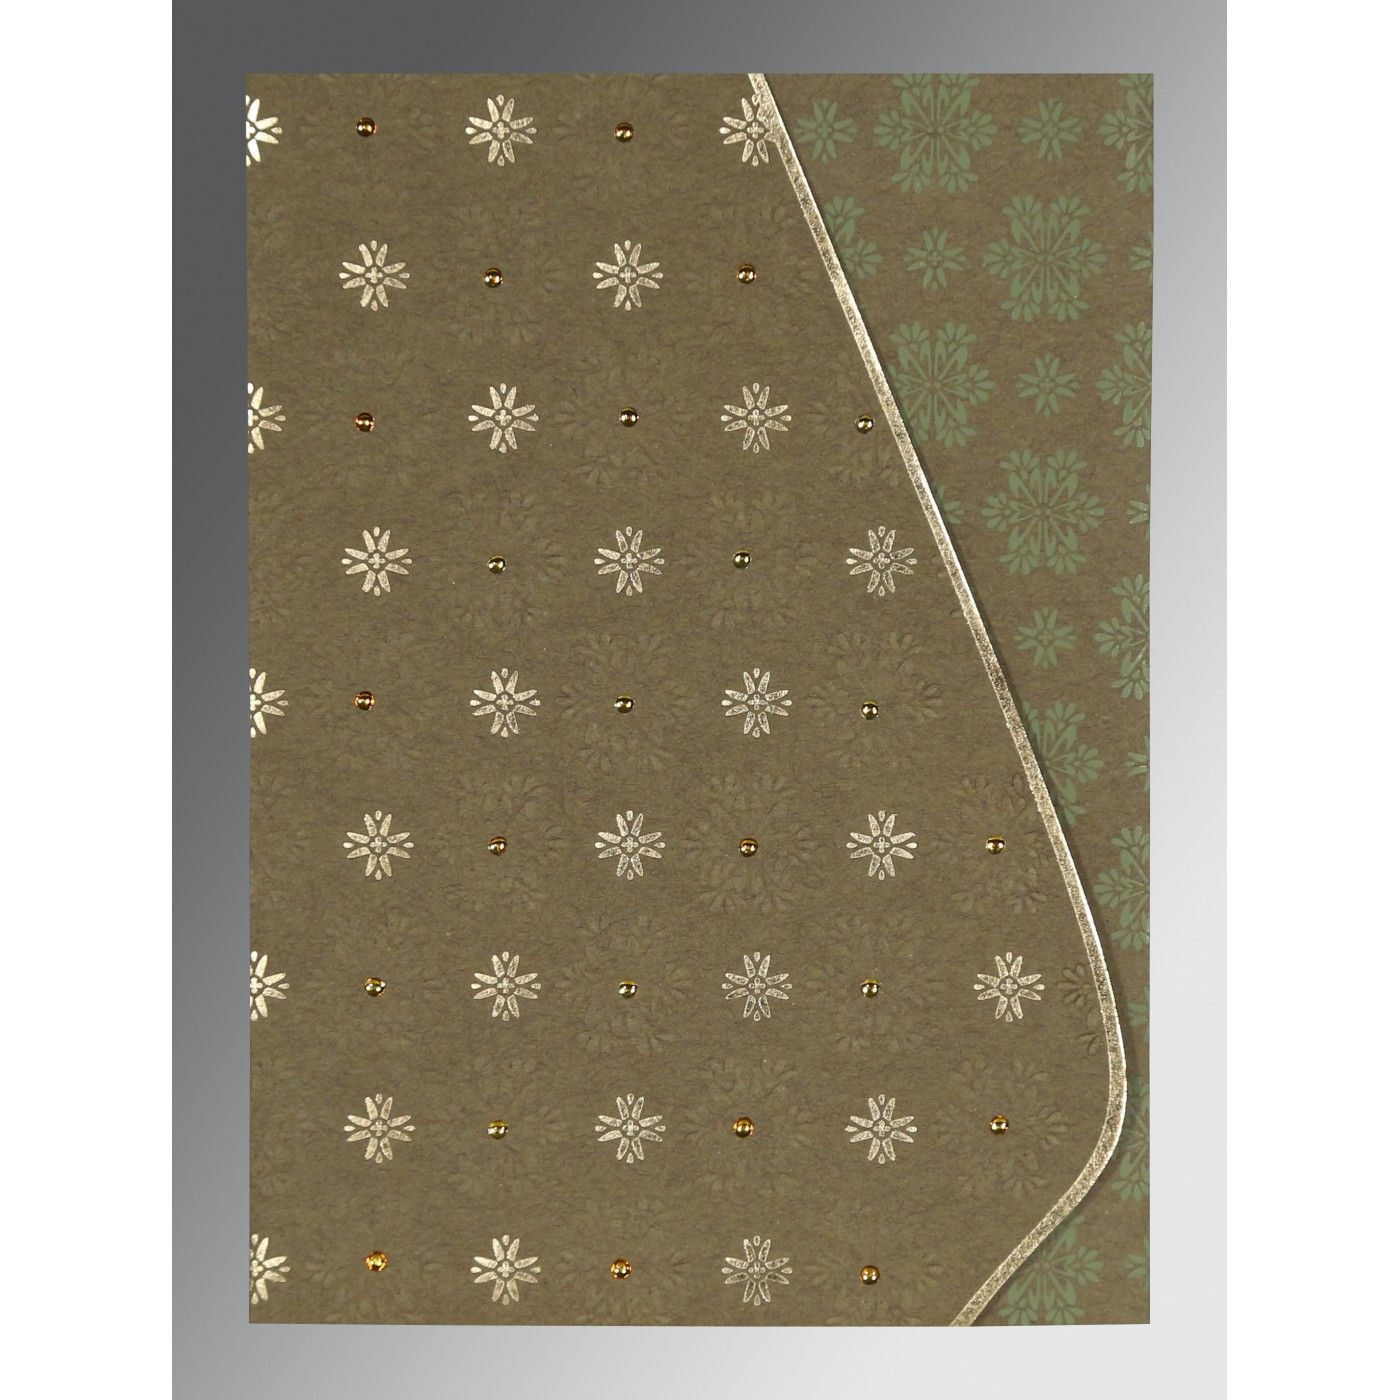 YELLOW METAL MATTE FLORAL THEMED - FOIL STAMPED WEDDING INVITATION : CG-8237E - IndianWeddingCards